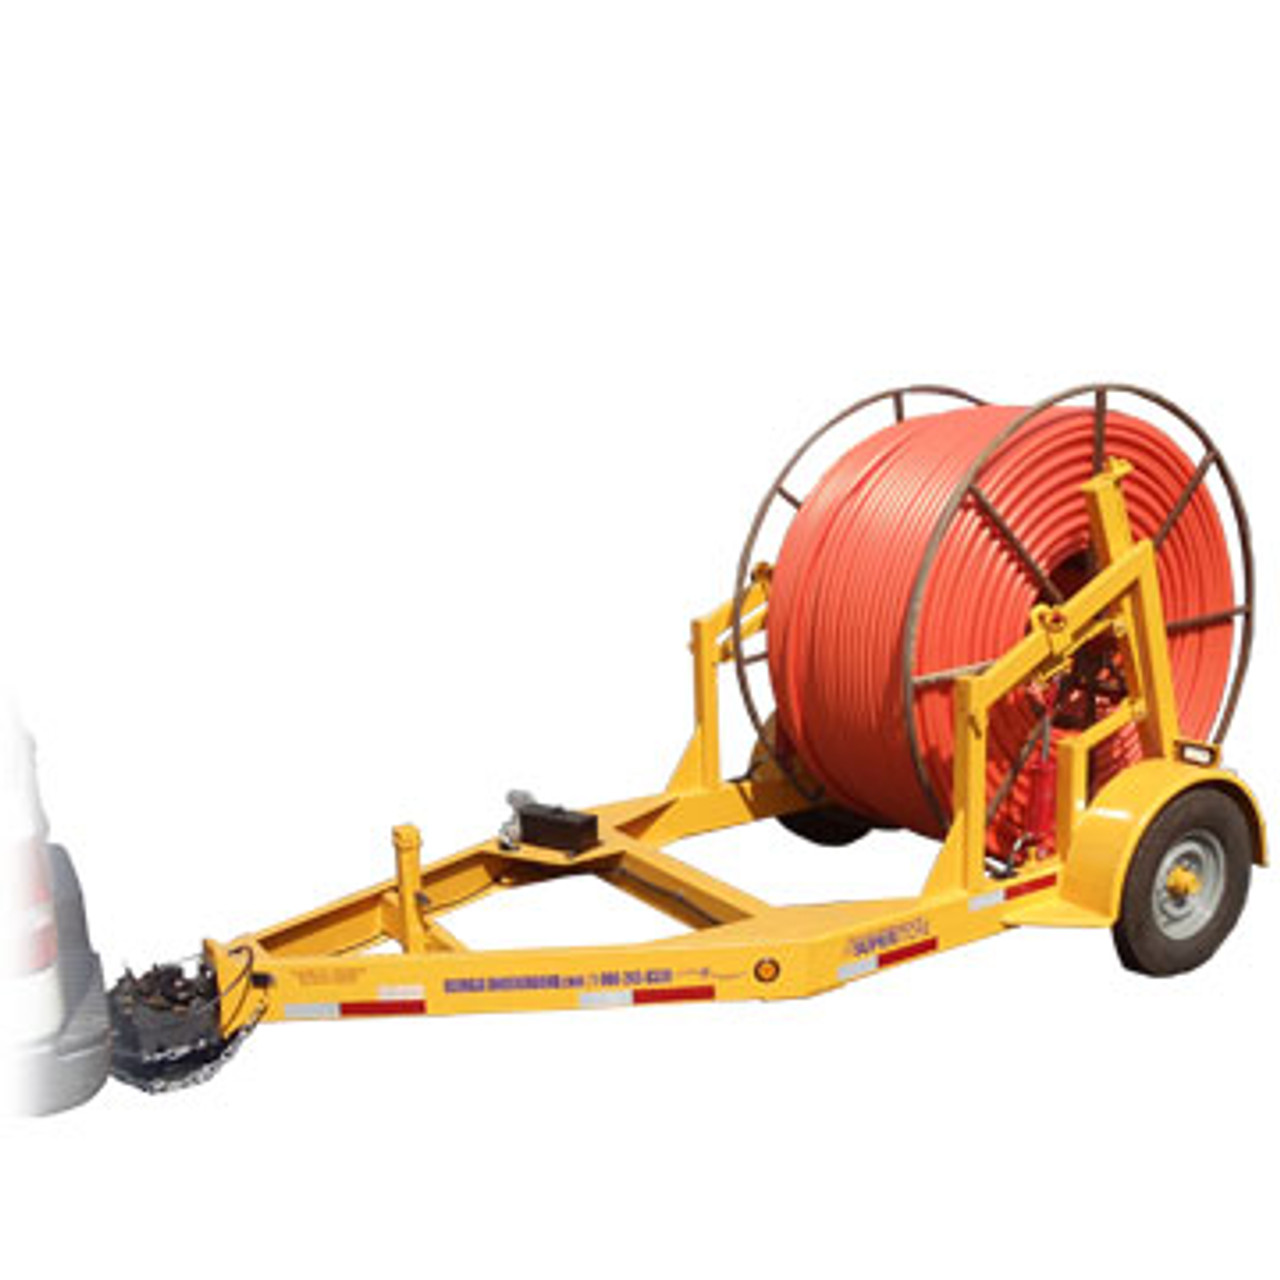 """The TR 3TSLR 3 Ton Self Loading Hydraulic Reel Trailer can handle reels up to 120"""" in diameter and 60"""" in width. Contact our veteran, knowledgeable staff for more information on this trailer."""